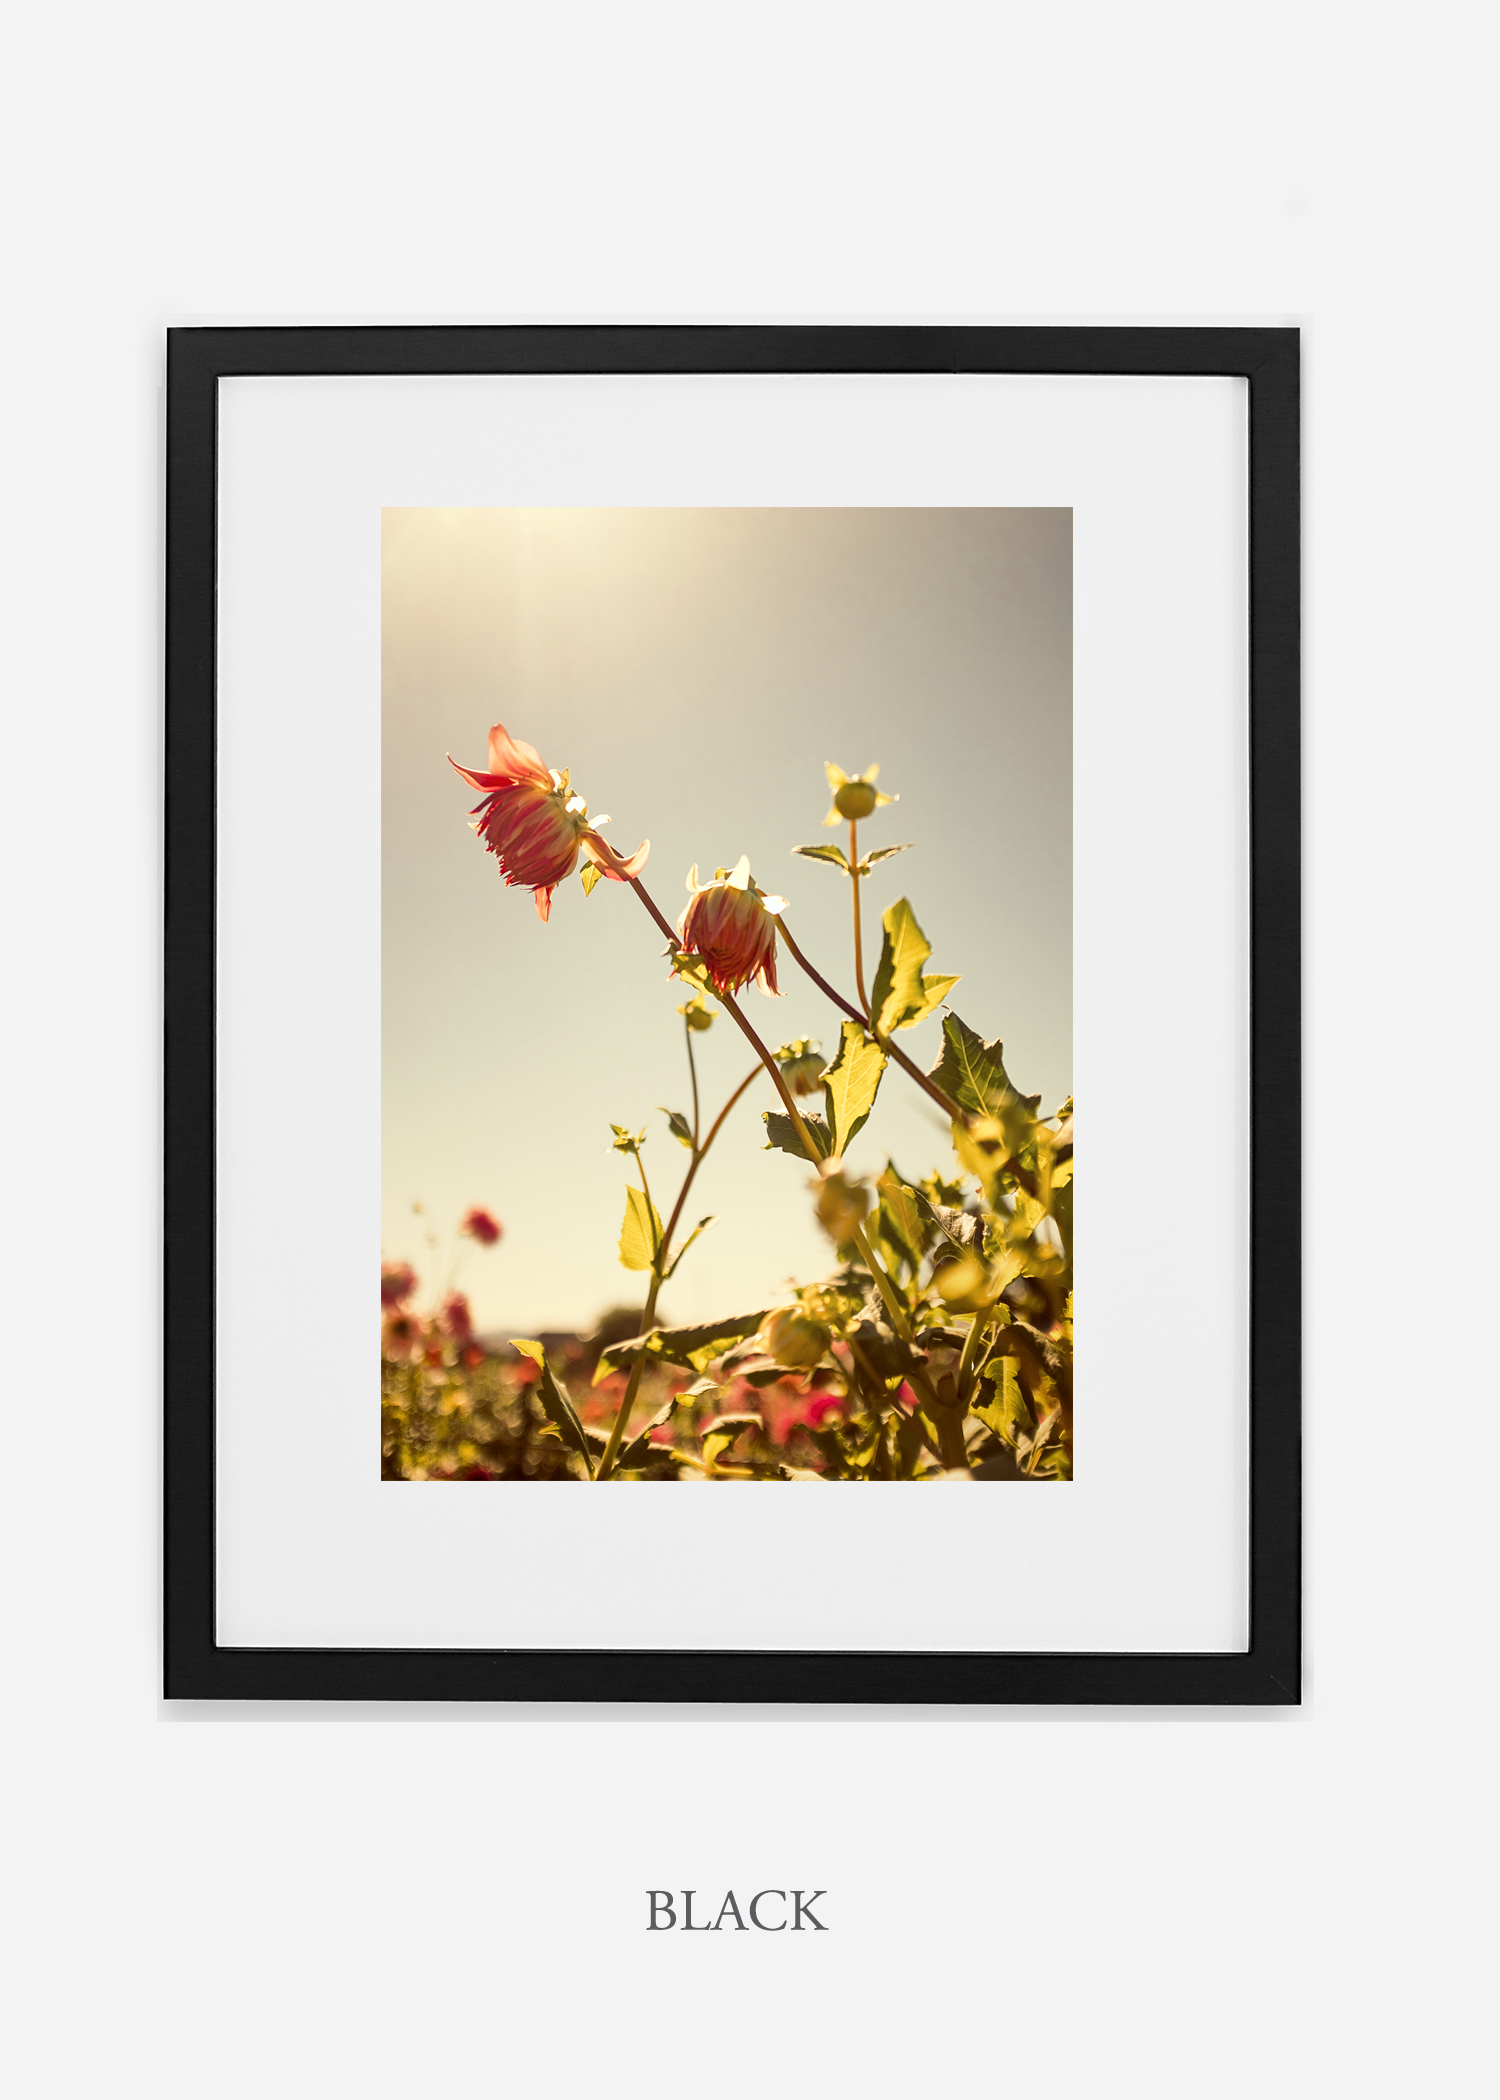 flora-no-10-black-mat-custom-frame-dahlia-print-floral-print-floral-art-wilder-california-botanical-prints-home-decor-design-prints-print-shop.jpg